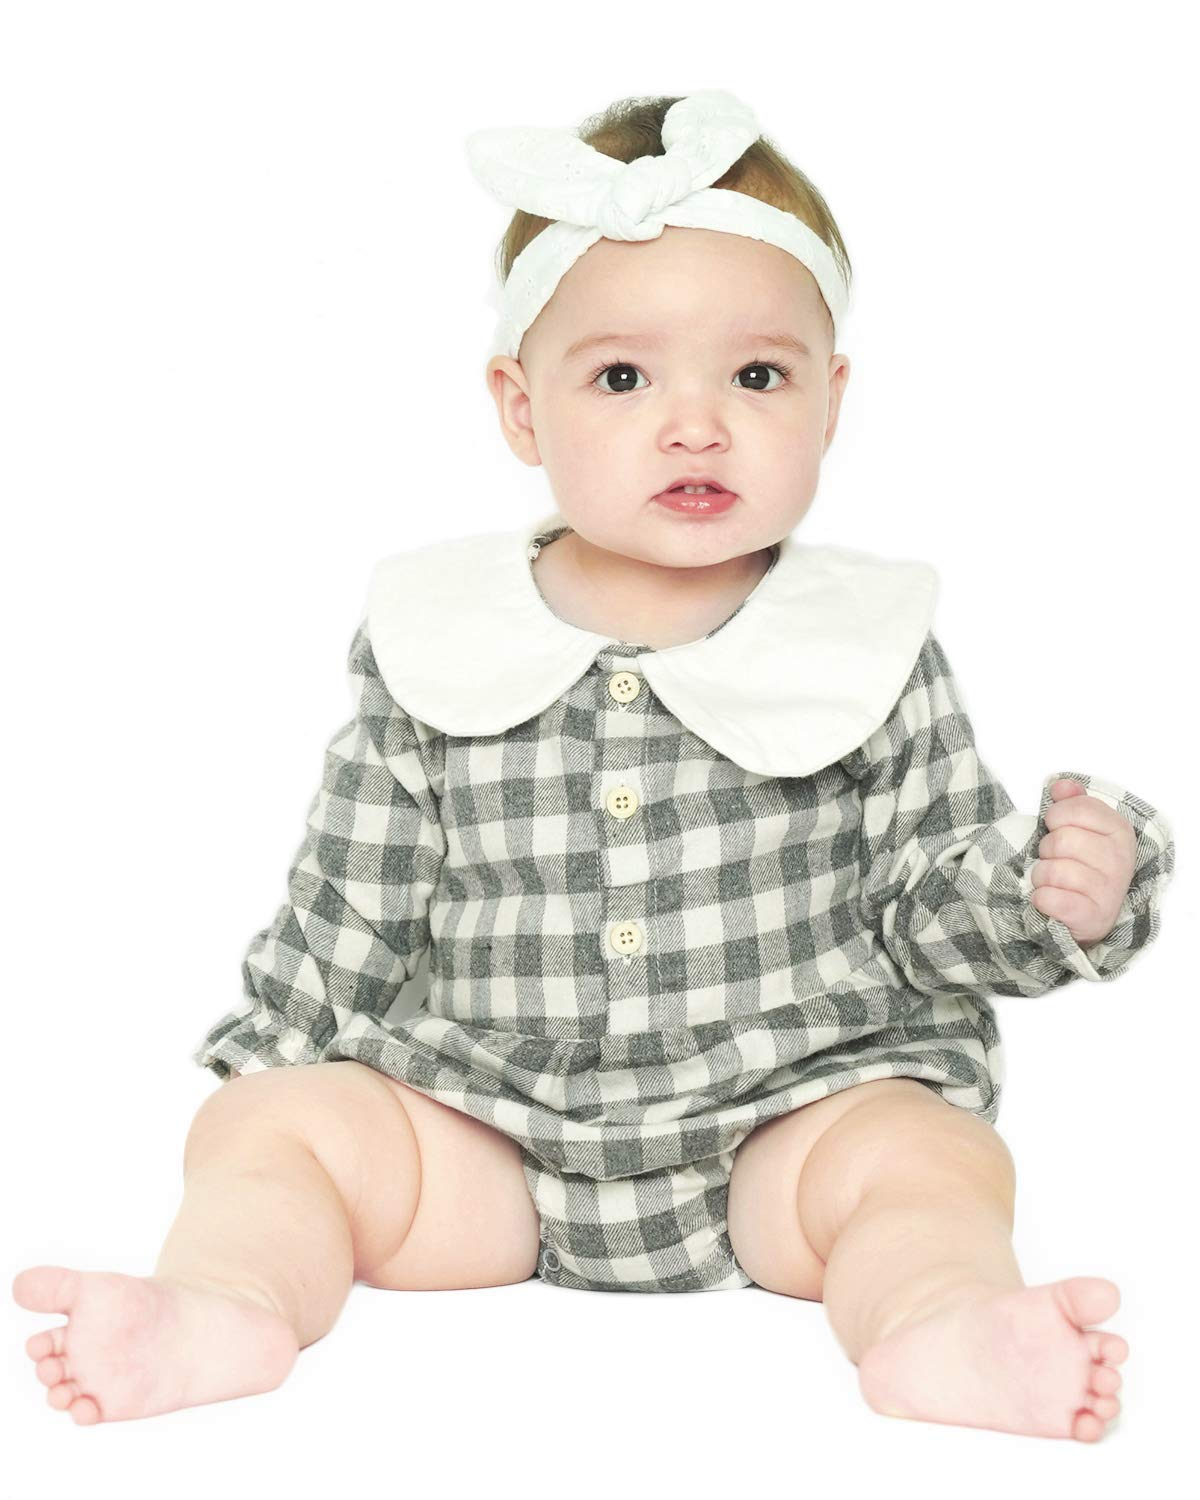 DeerBird Baby Girls Long Sleeve Bodysuits Rompers Plaid Infant Toddler Cotton Jumpsuits Size 6M Grey Plaid